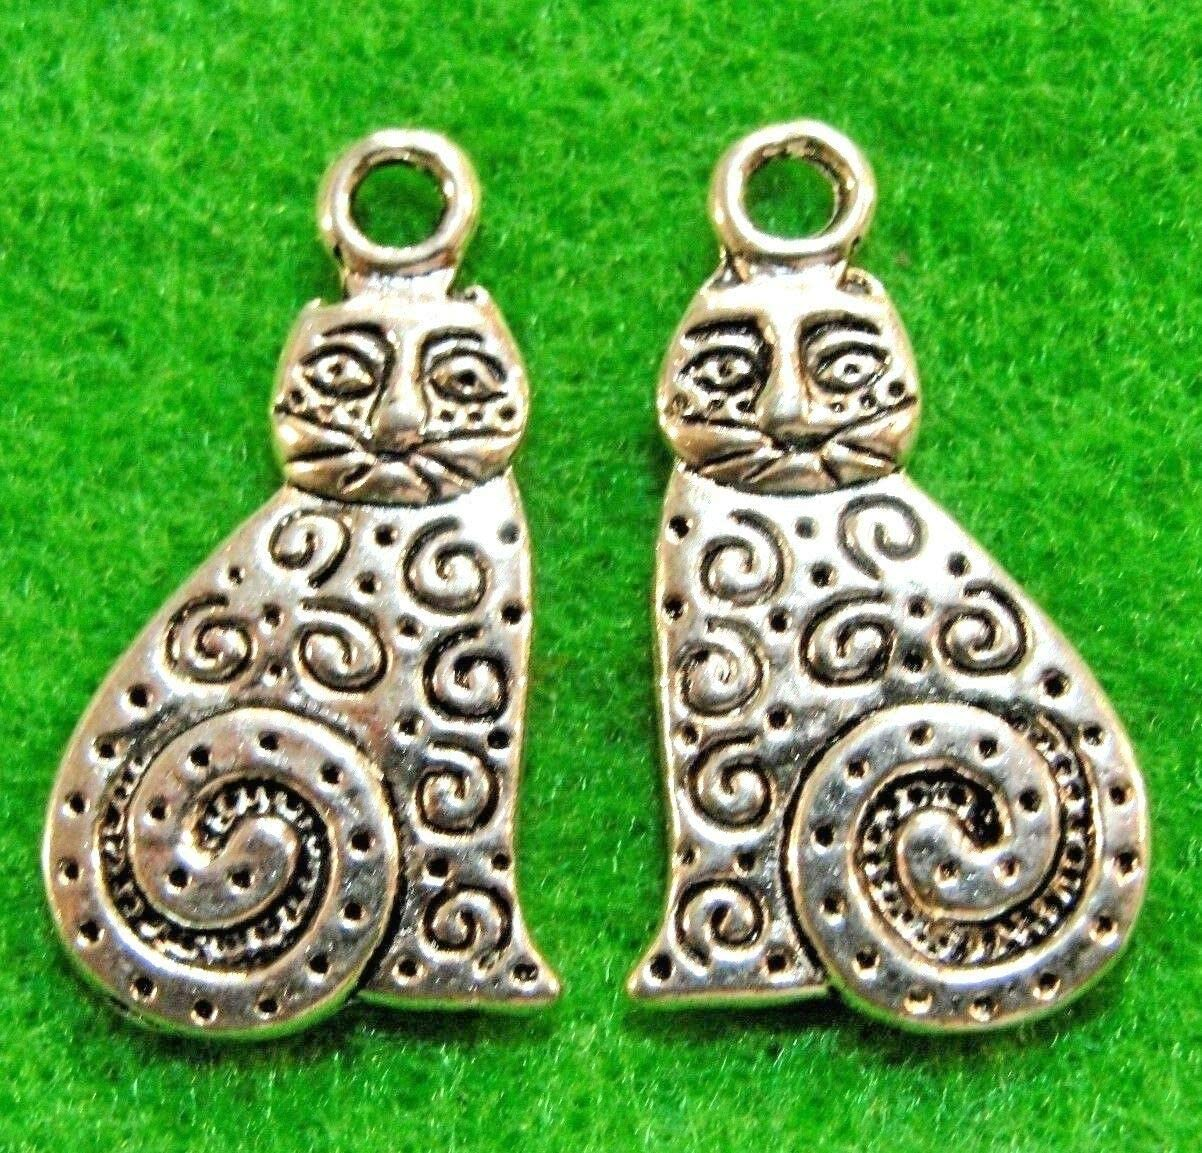 50-Pcs. Silver Kitty CAT Charms Pendants Earring Drops Q1149 - Jewelry Making DIY Crafting Charm Beads for Bracelets